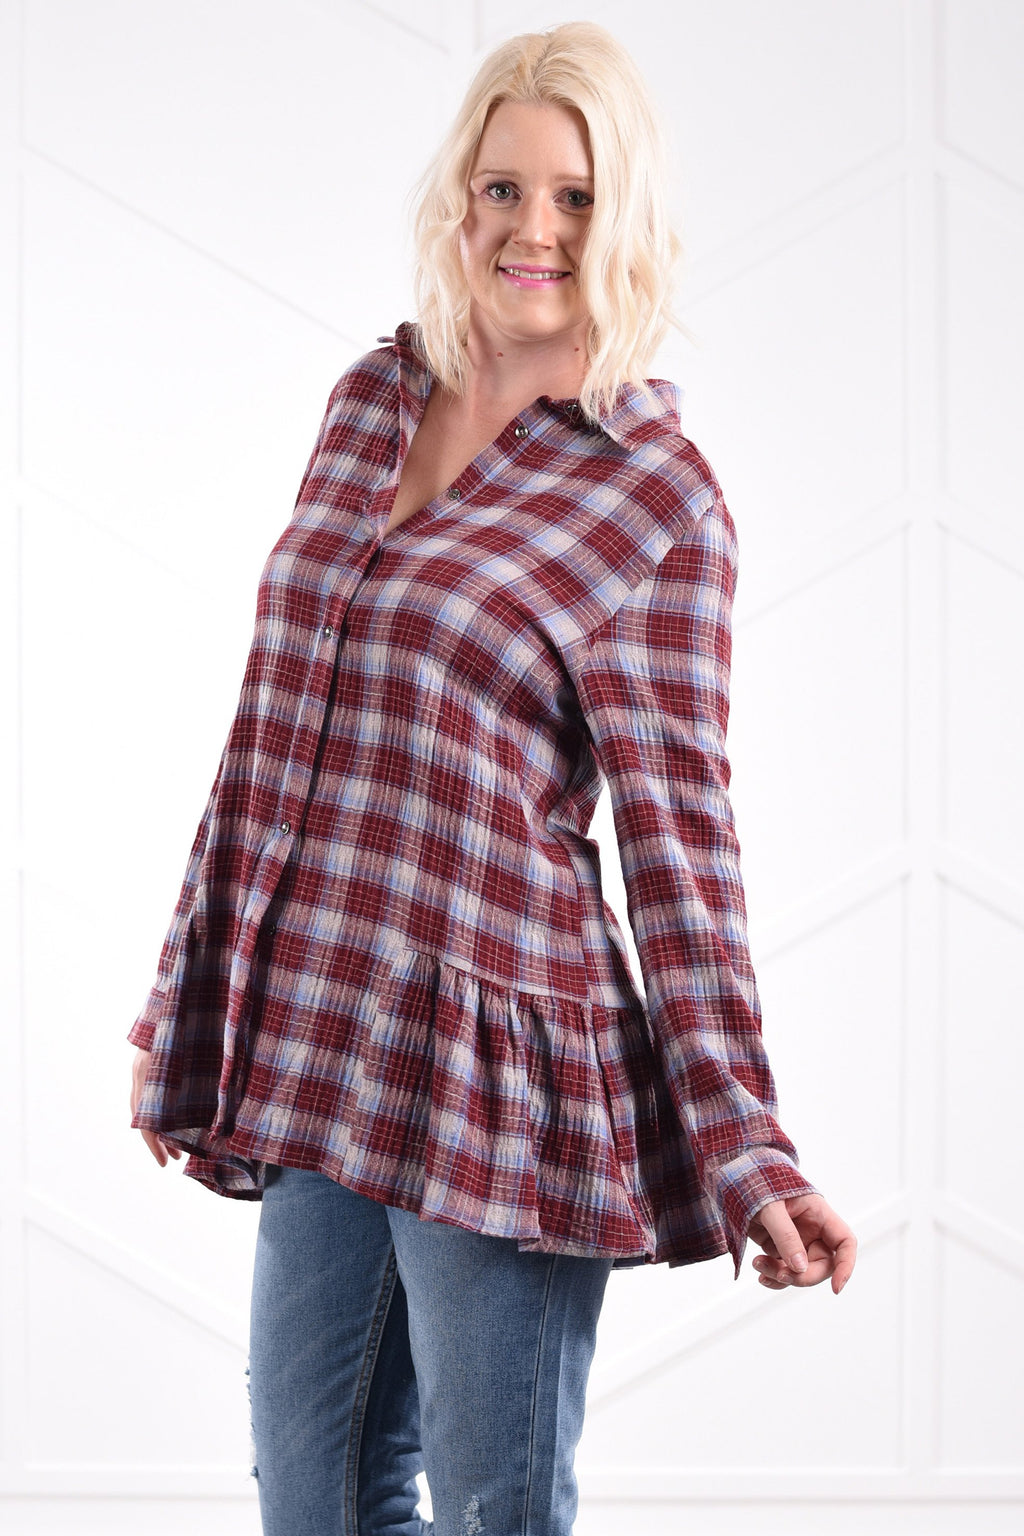 Brenna Ruffle Plaid Blouse - women's boutique clothing Strong Confident You